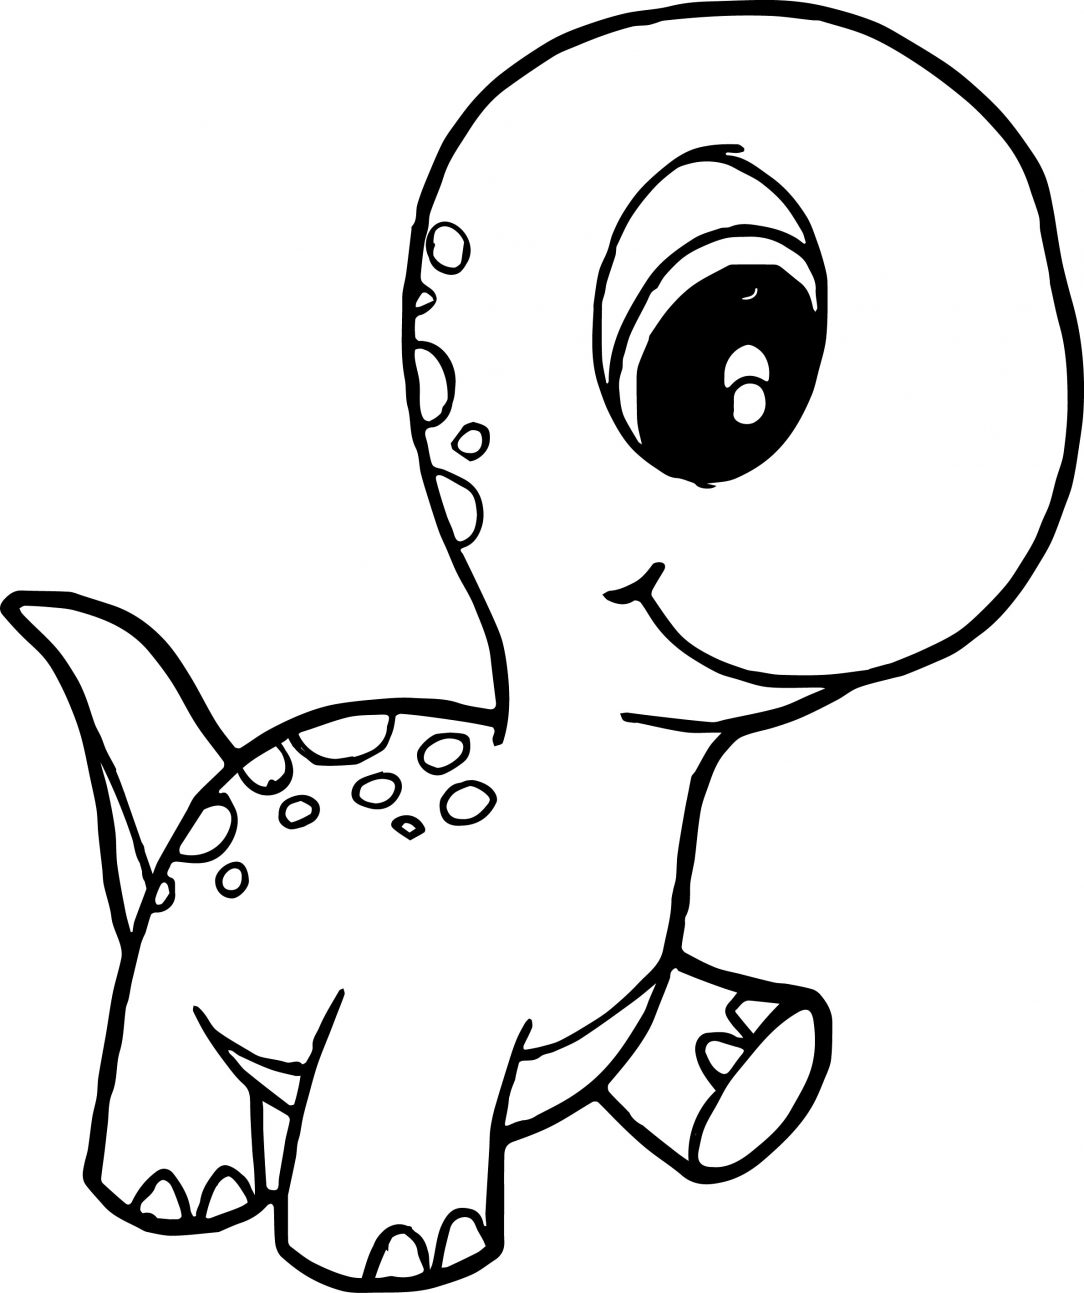 Simple Dinosaur Drawing   Free download on ClipArtMag